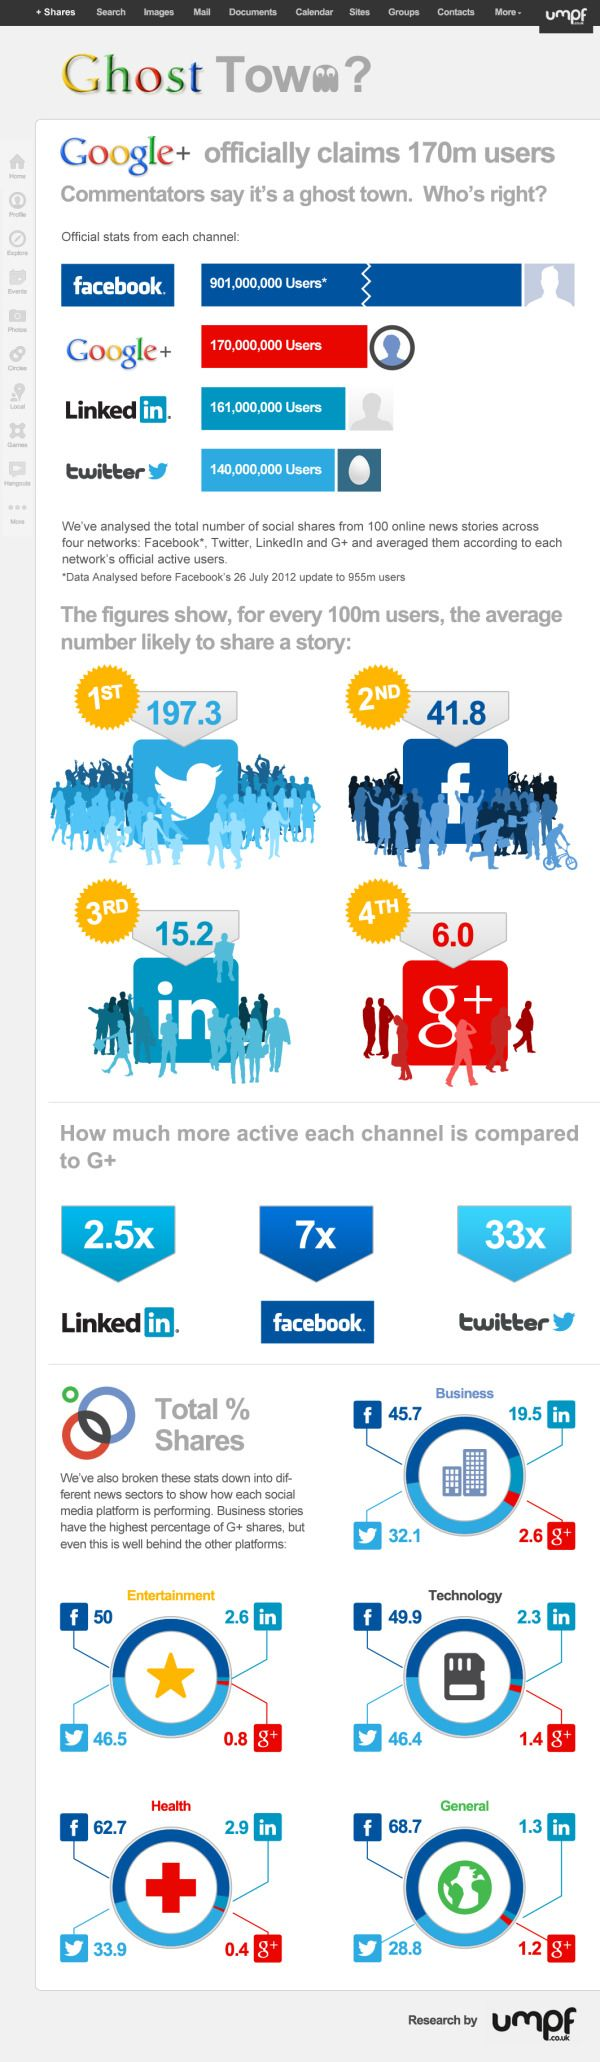 Is Google+ a Ghost Town? infographic